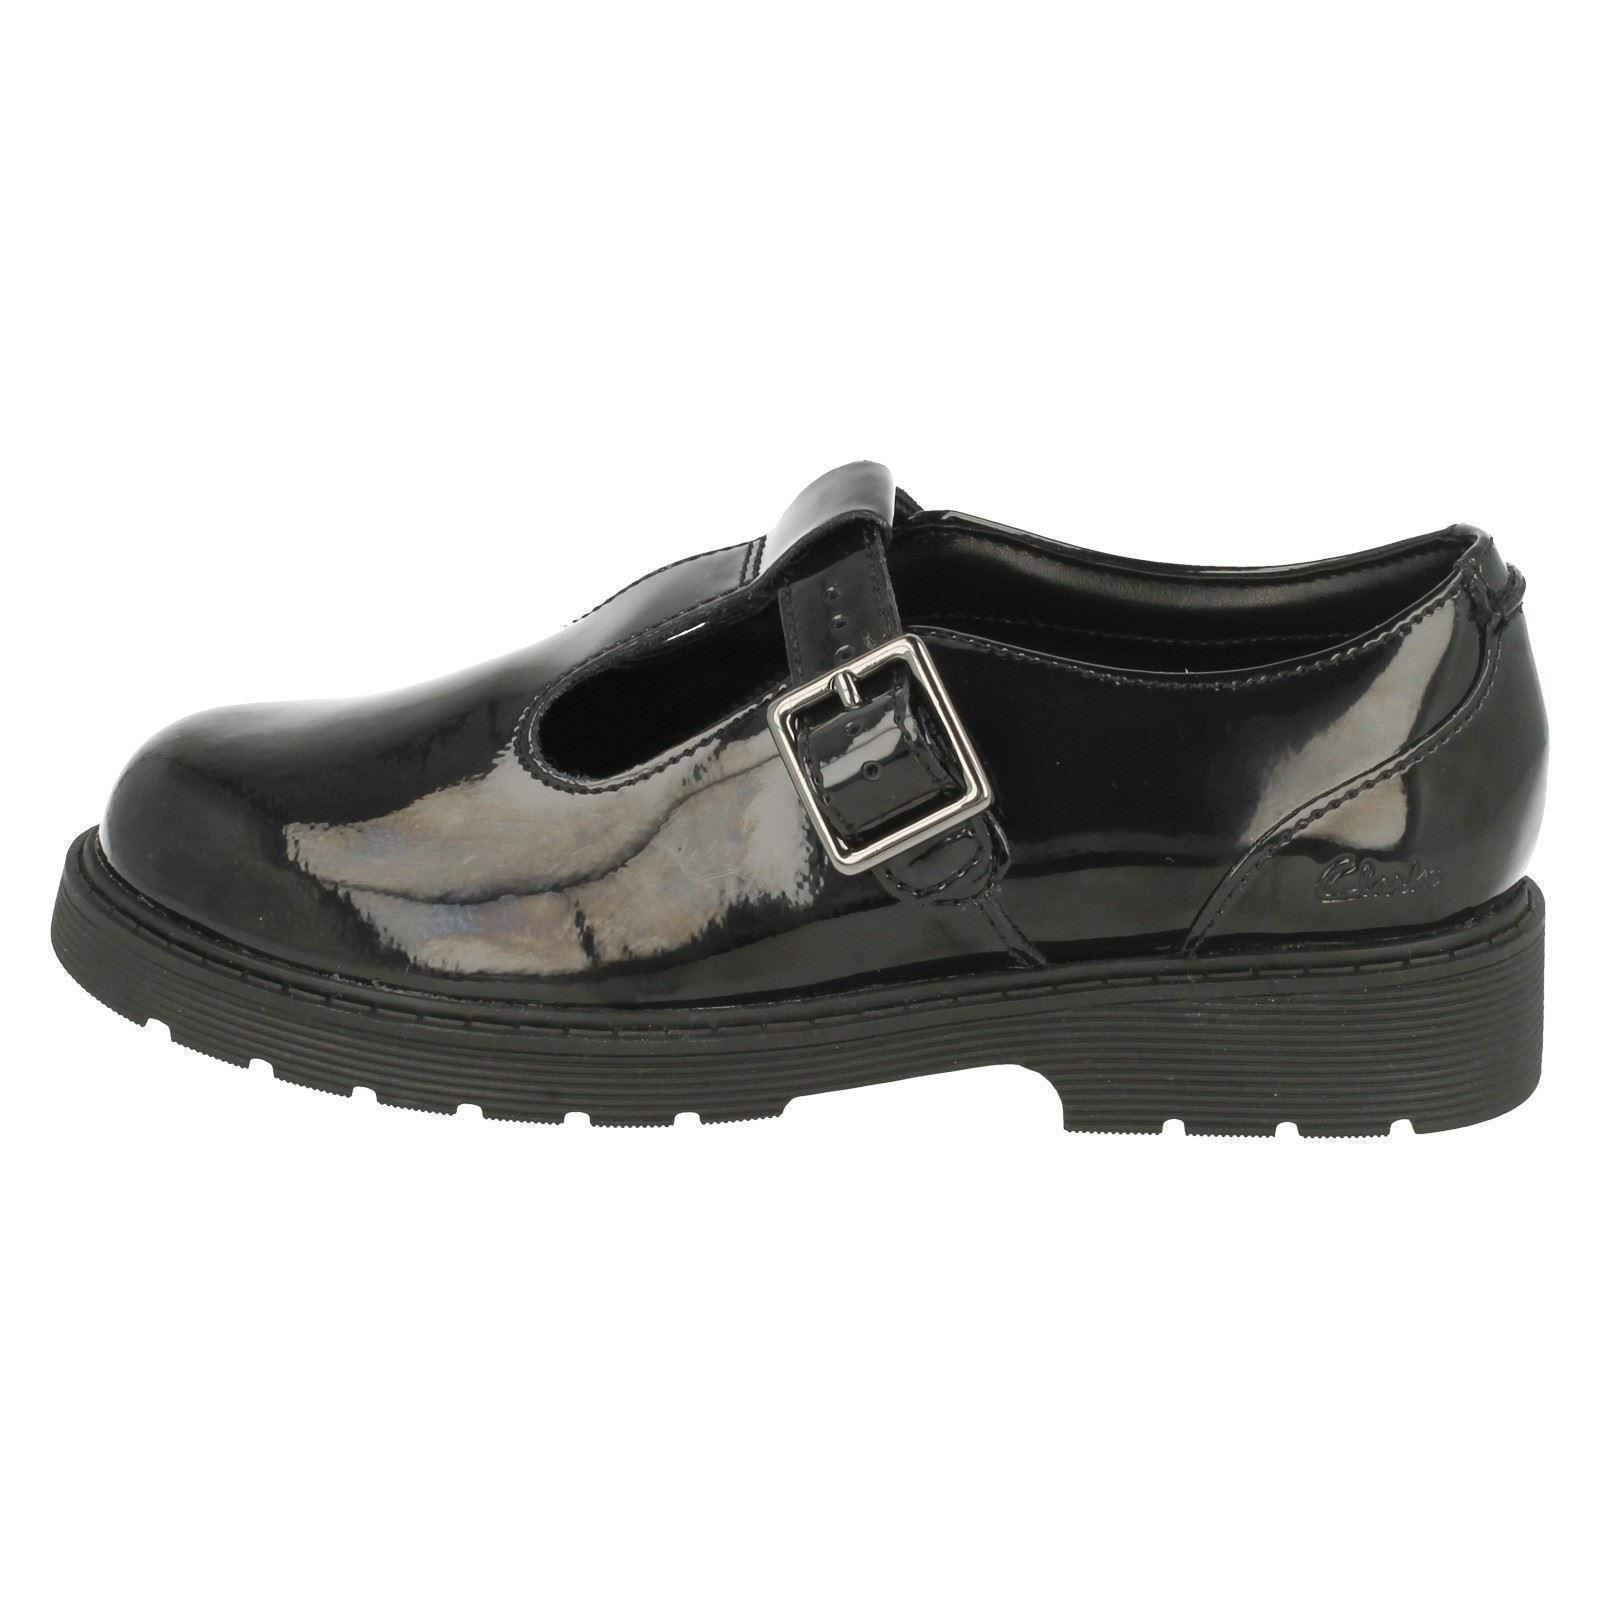 a8f2d2c6182f Girls Bootleg by Clarks Buckle Fastening T-Bar Leather School Shoes ...